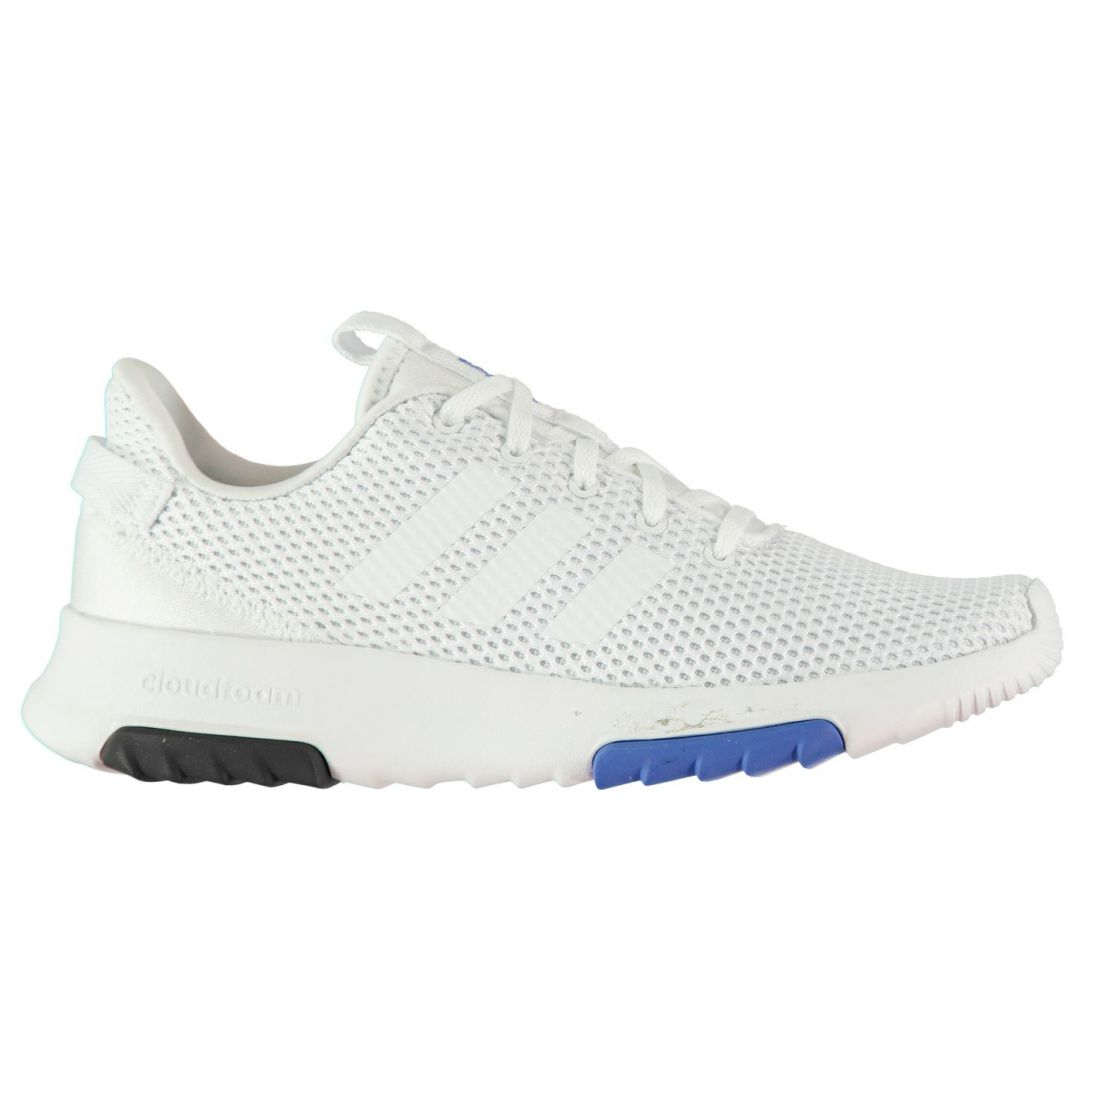 afe6fd4d1 adidas Neo Cloudfoam Racer TR Grey CG5704 Casual Trainers Sizes UK 9.5 -  10.5 UK 10 for sale | eBay